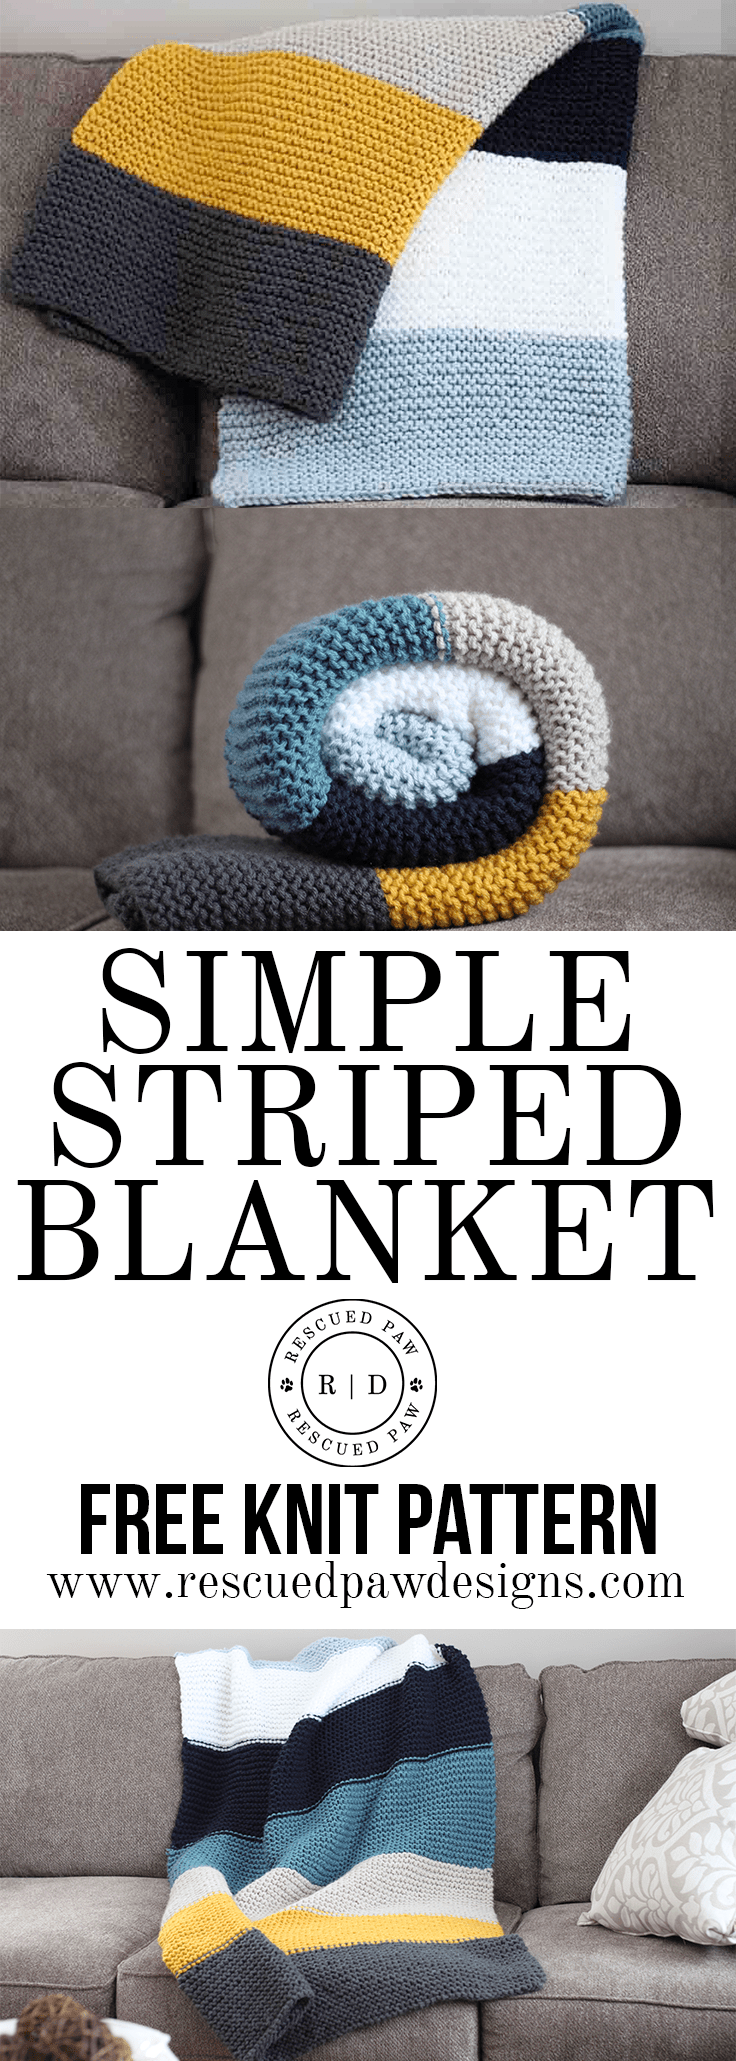 How To Knit A Blanket Free Knitting Pattern Free Step